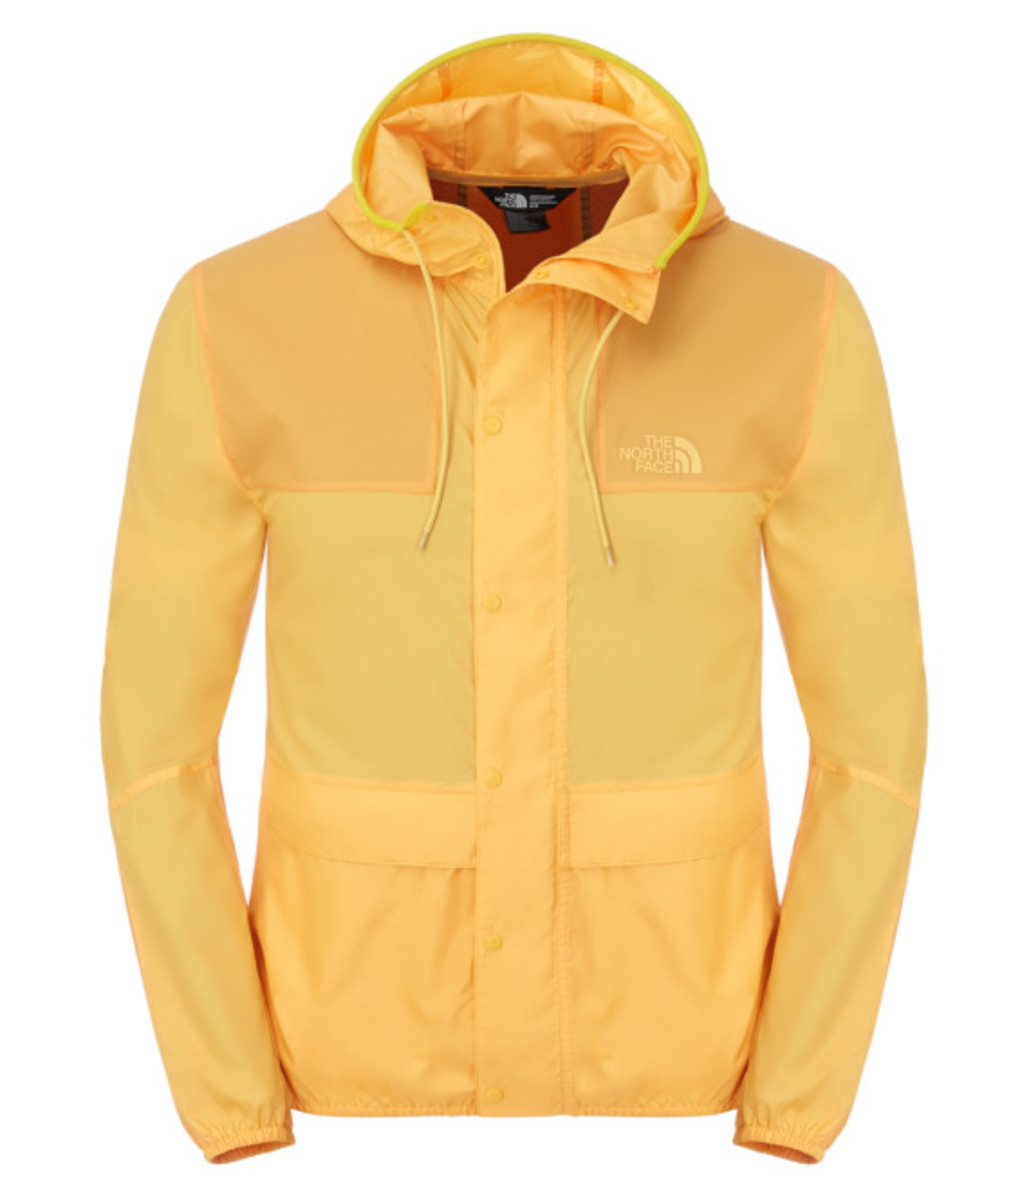 the-north-face-mountain-jacket-09